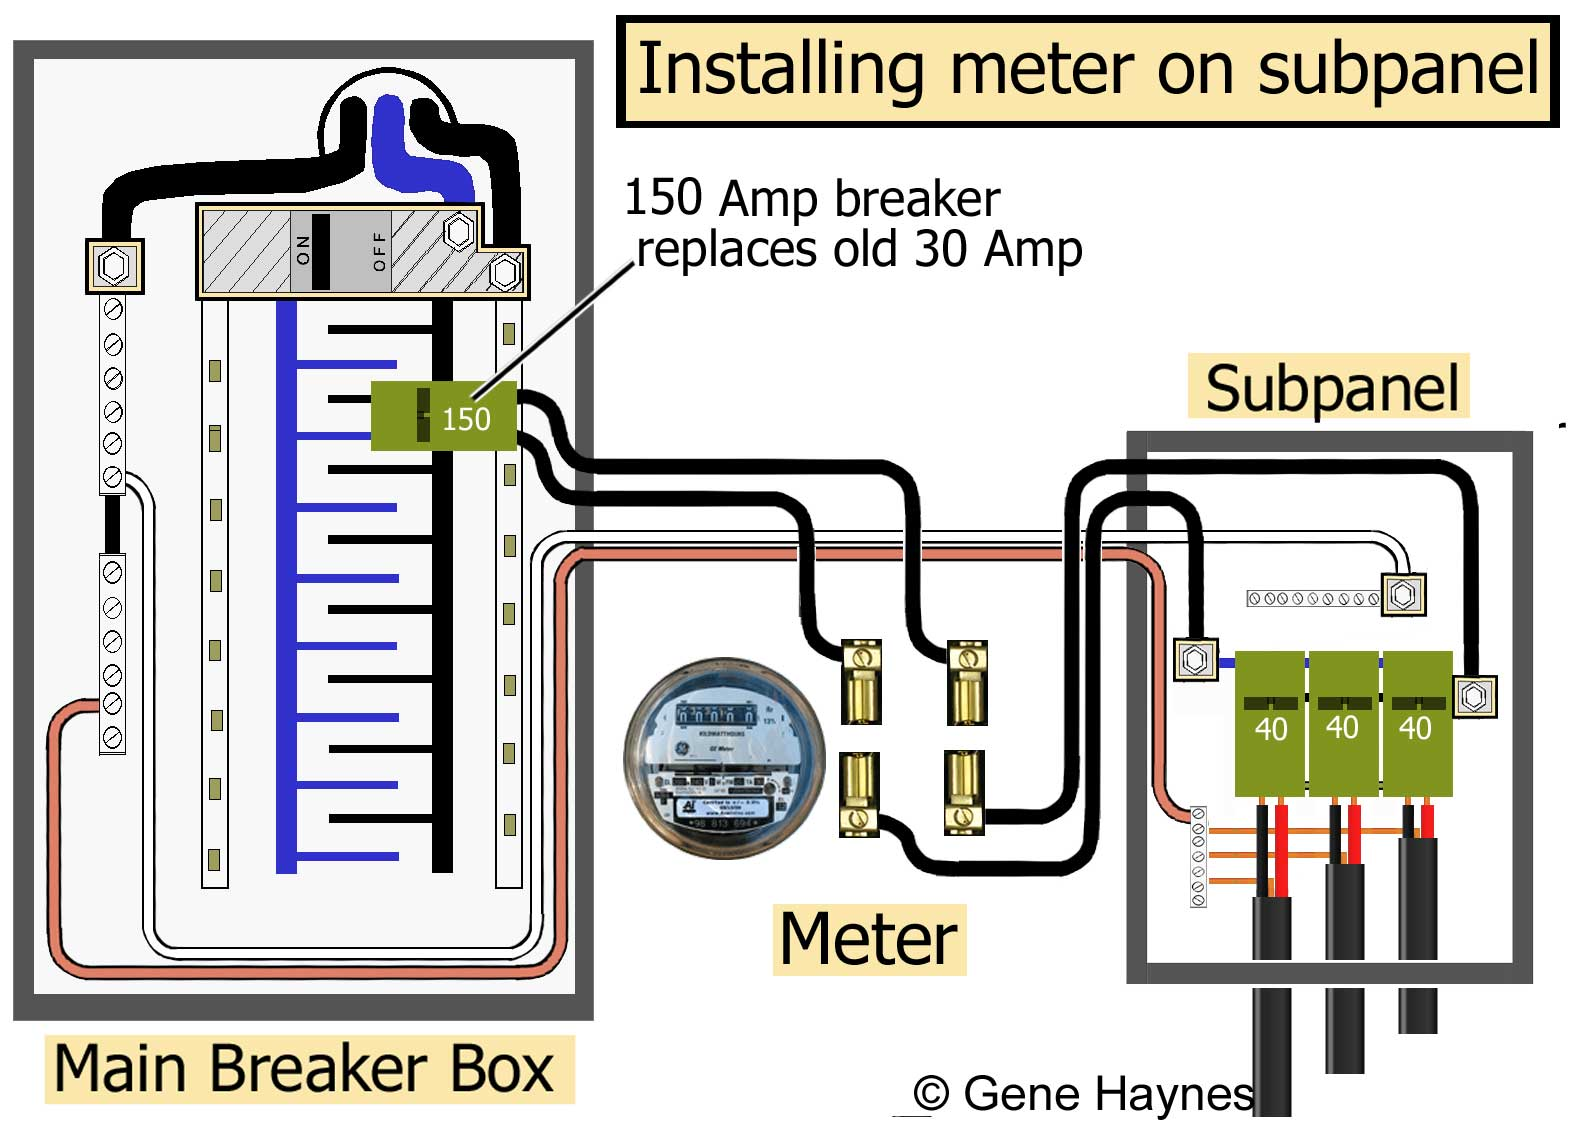 50 amp sub panel wiring diagram wiring library ahotel how to install a subpanel how to install main lug rh waterheatertimer org 50 amp plug wiring diagram 50 amp circuit wire size greentooth Image collections